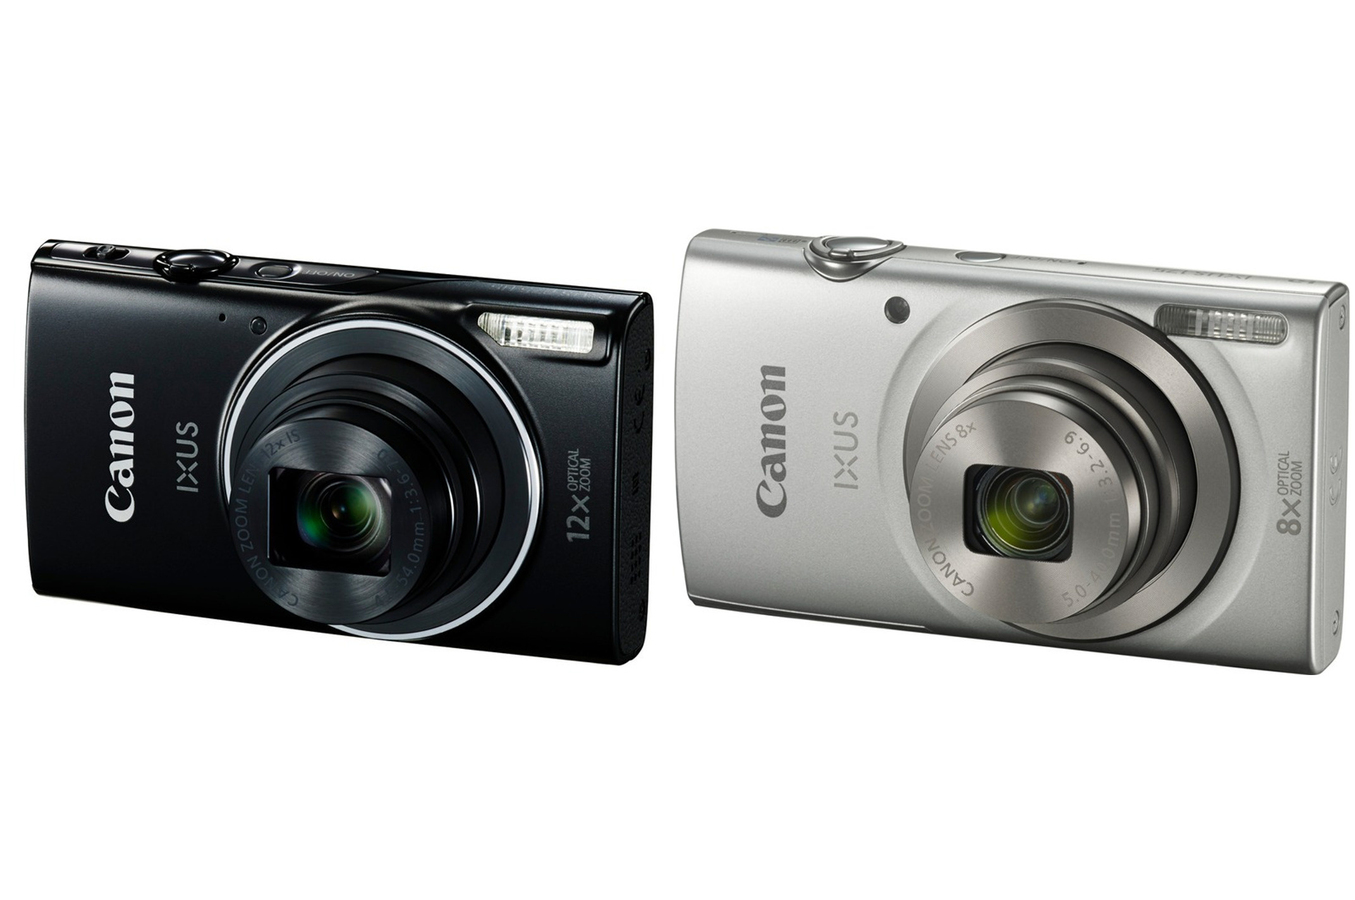 canon ixus 275 hs black 175 silver appareil photo. Black Bedroom Furniture Sets. Home Design Ideas